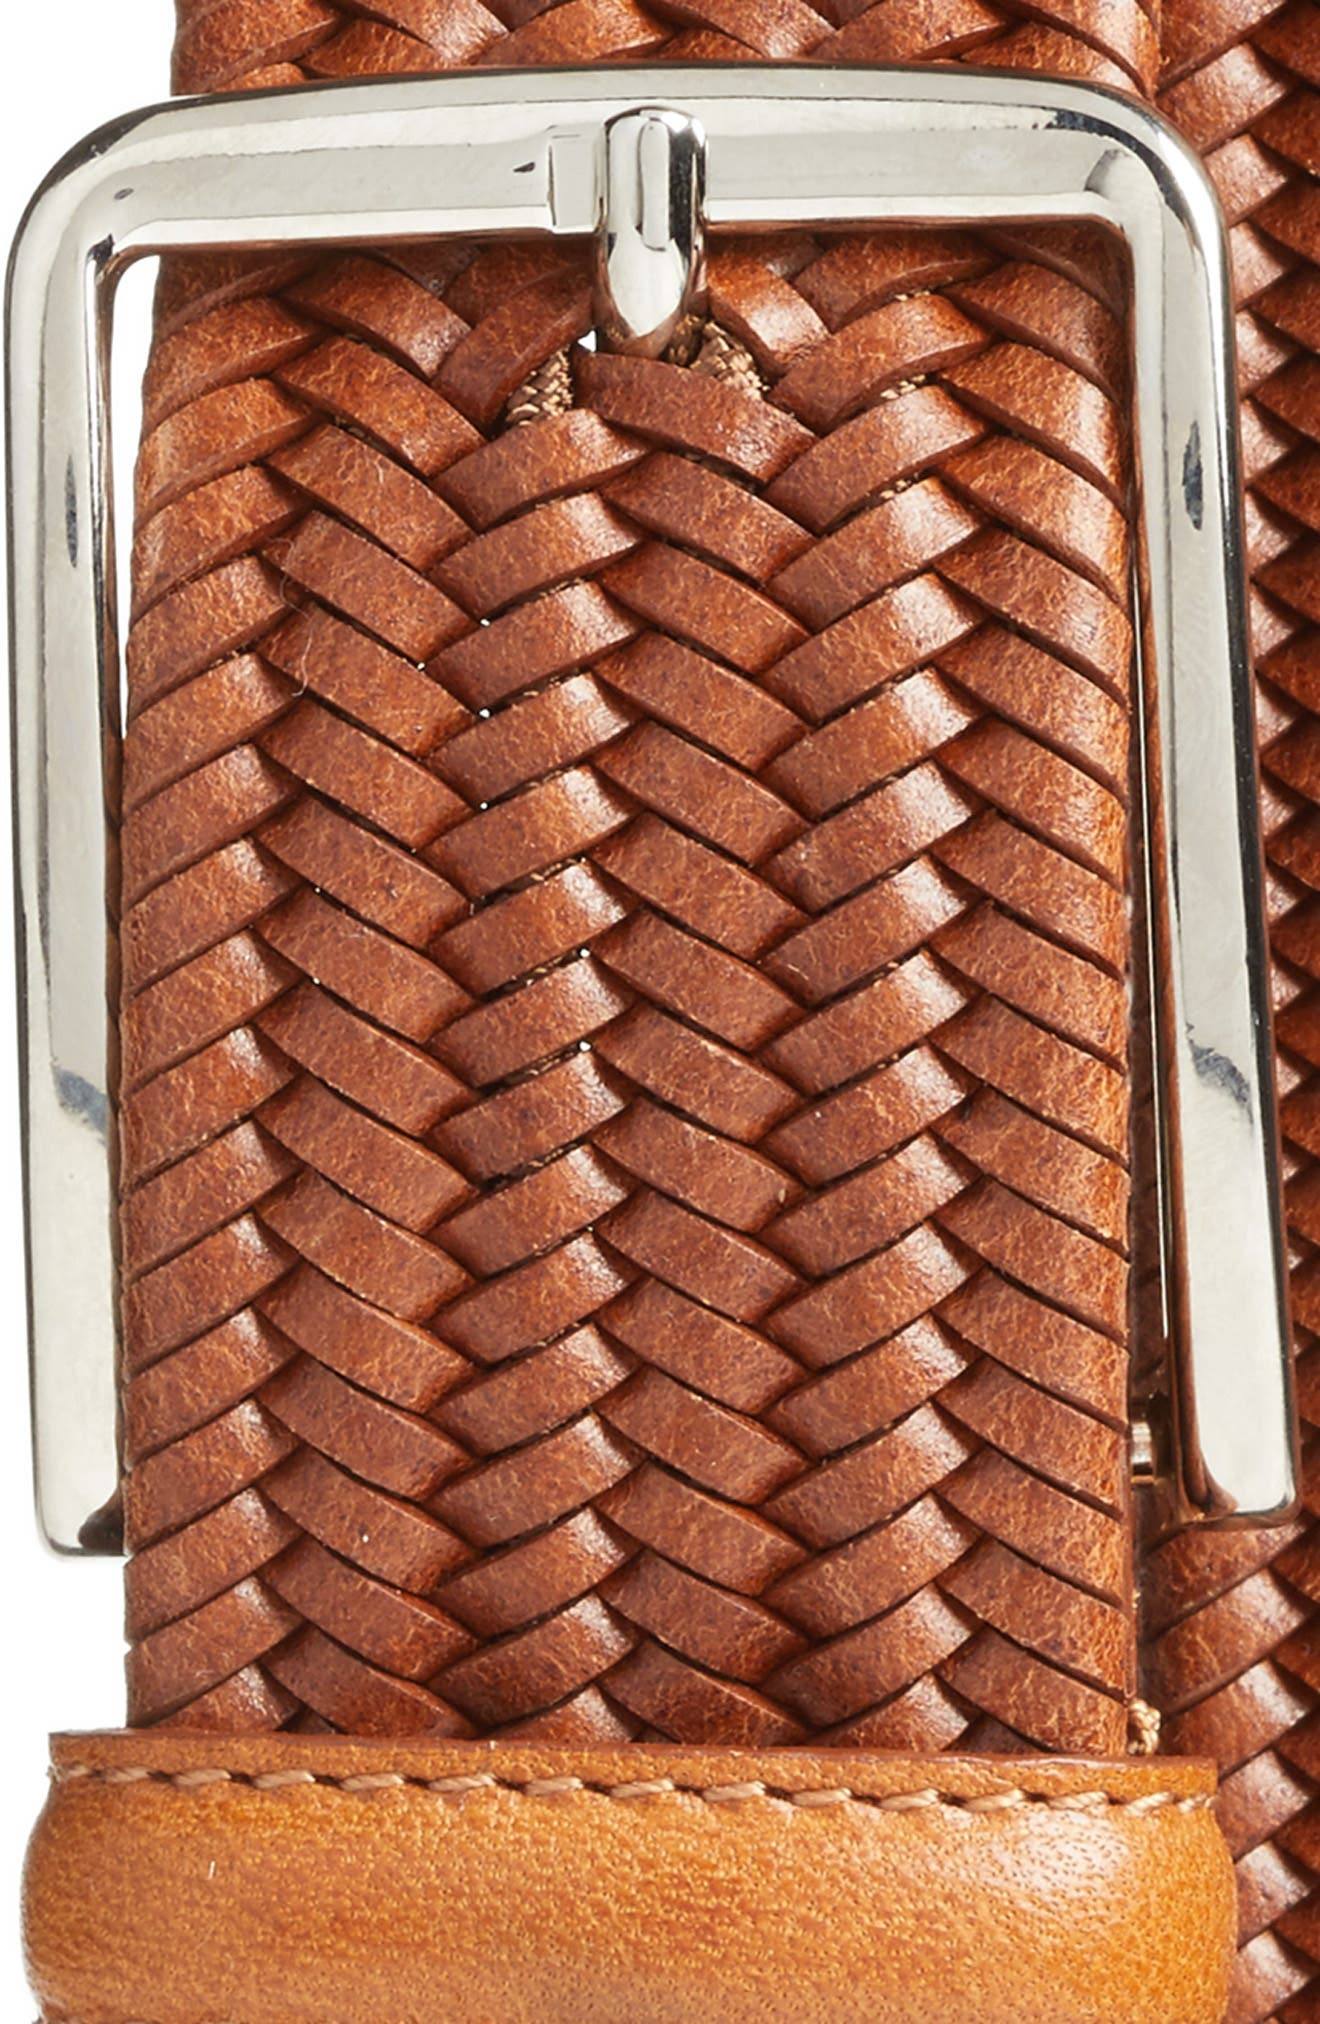 Lexington Braided Leather Belt,                             Alternate thumbnail 2, color,                             Saddle Tan